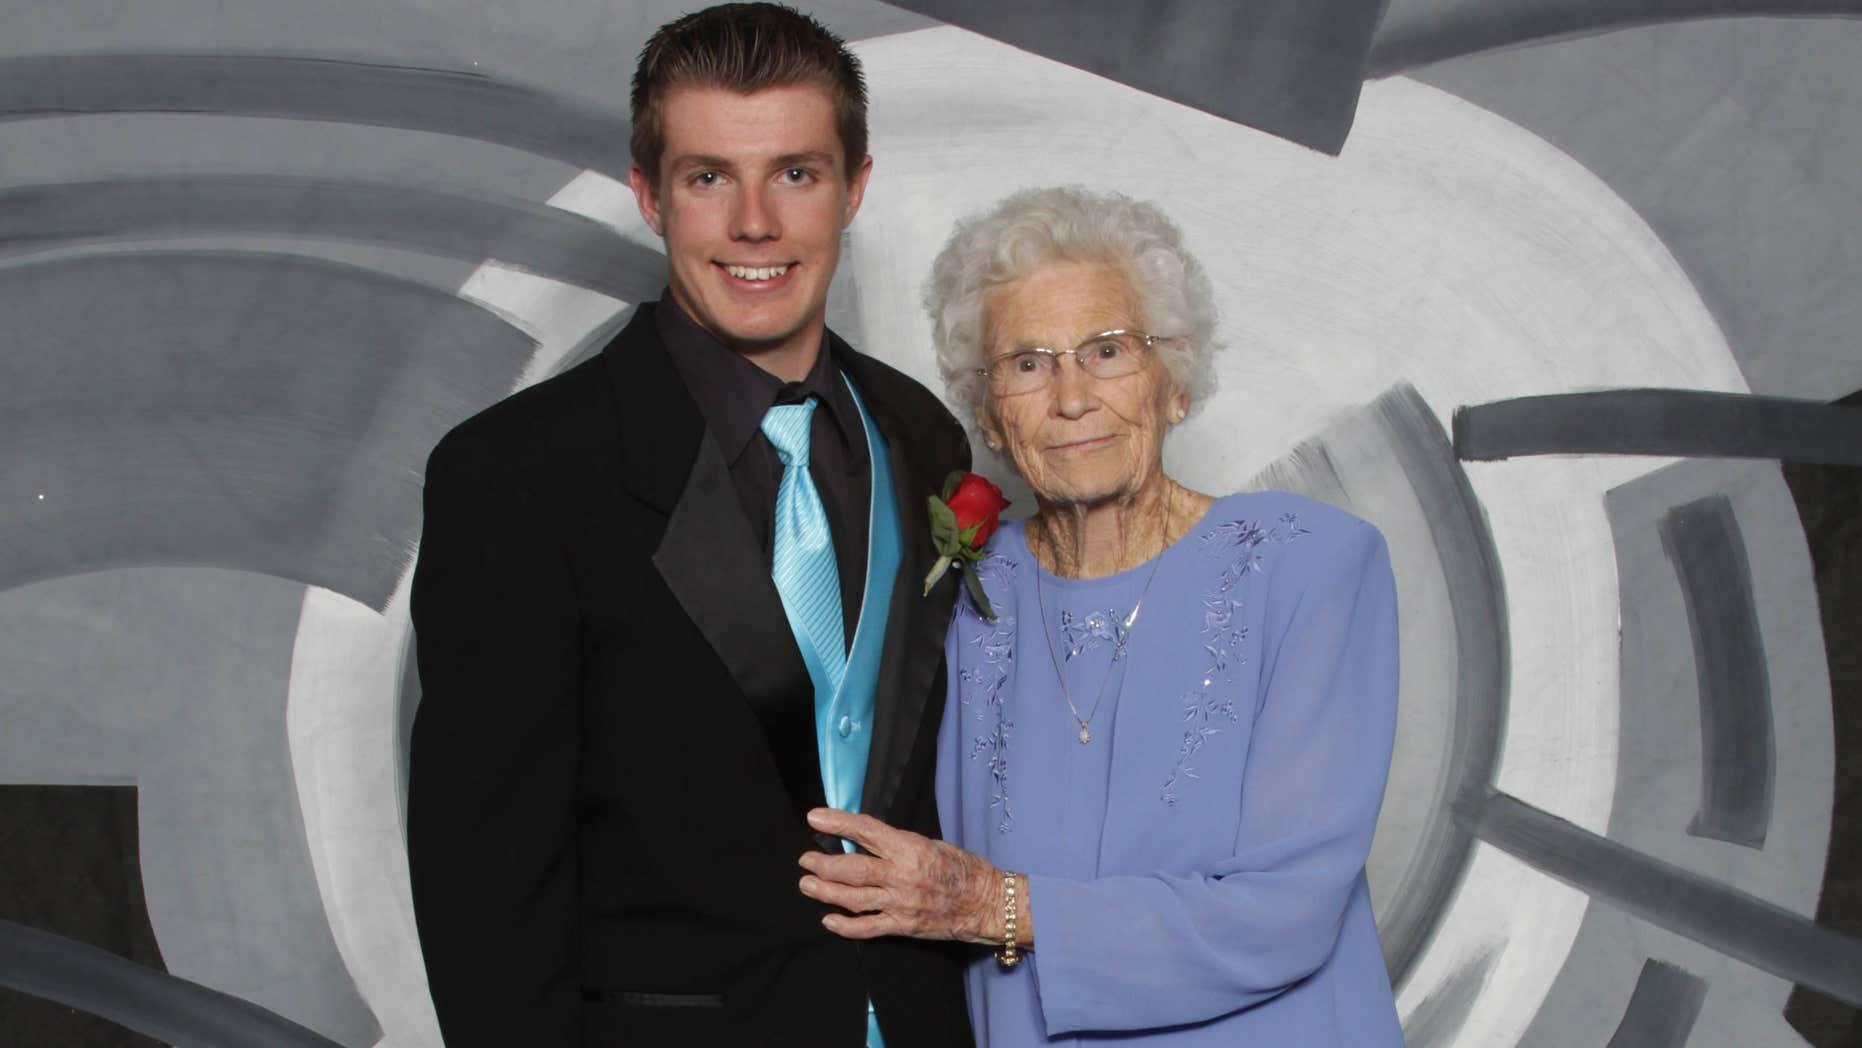 This photo provided by Inter-State Studio & Publishing Co. Shows Drew Holm and his great-grandmother Kathryn Keith in their prom picture.